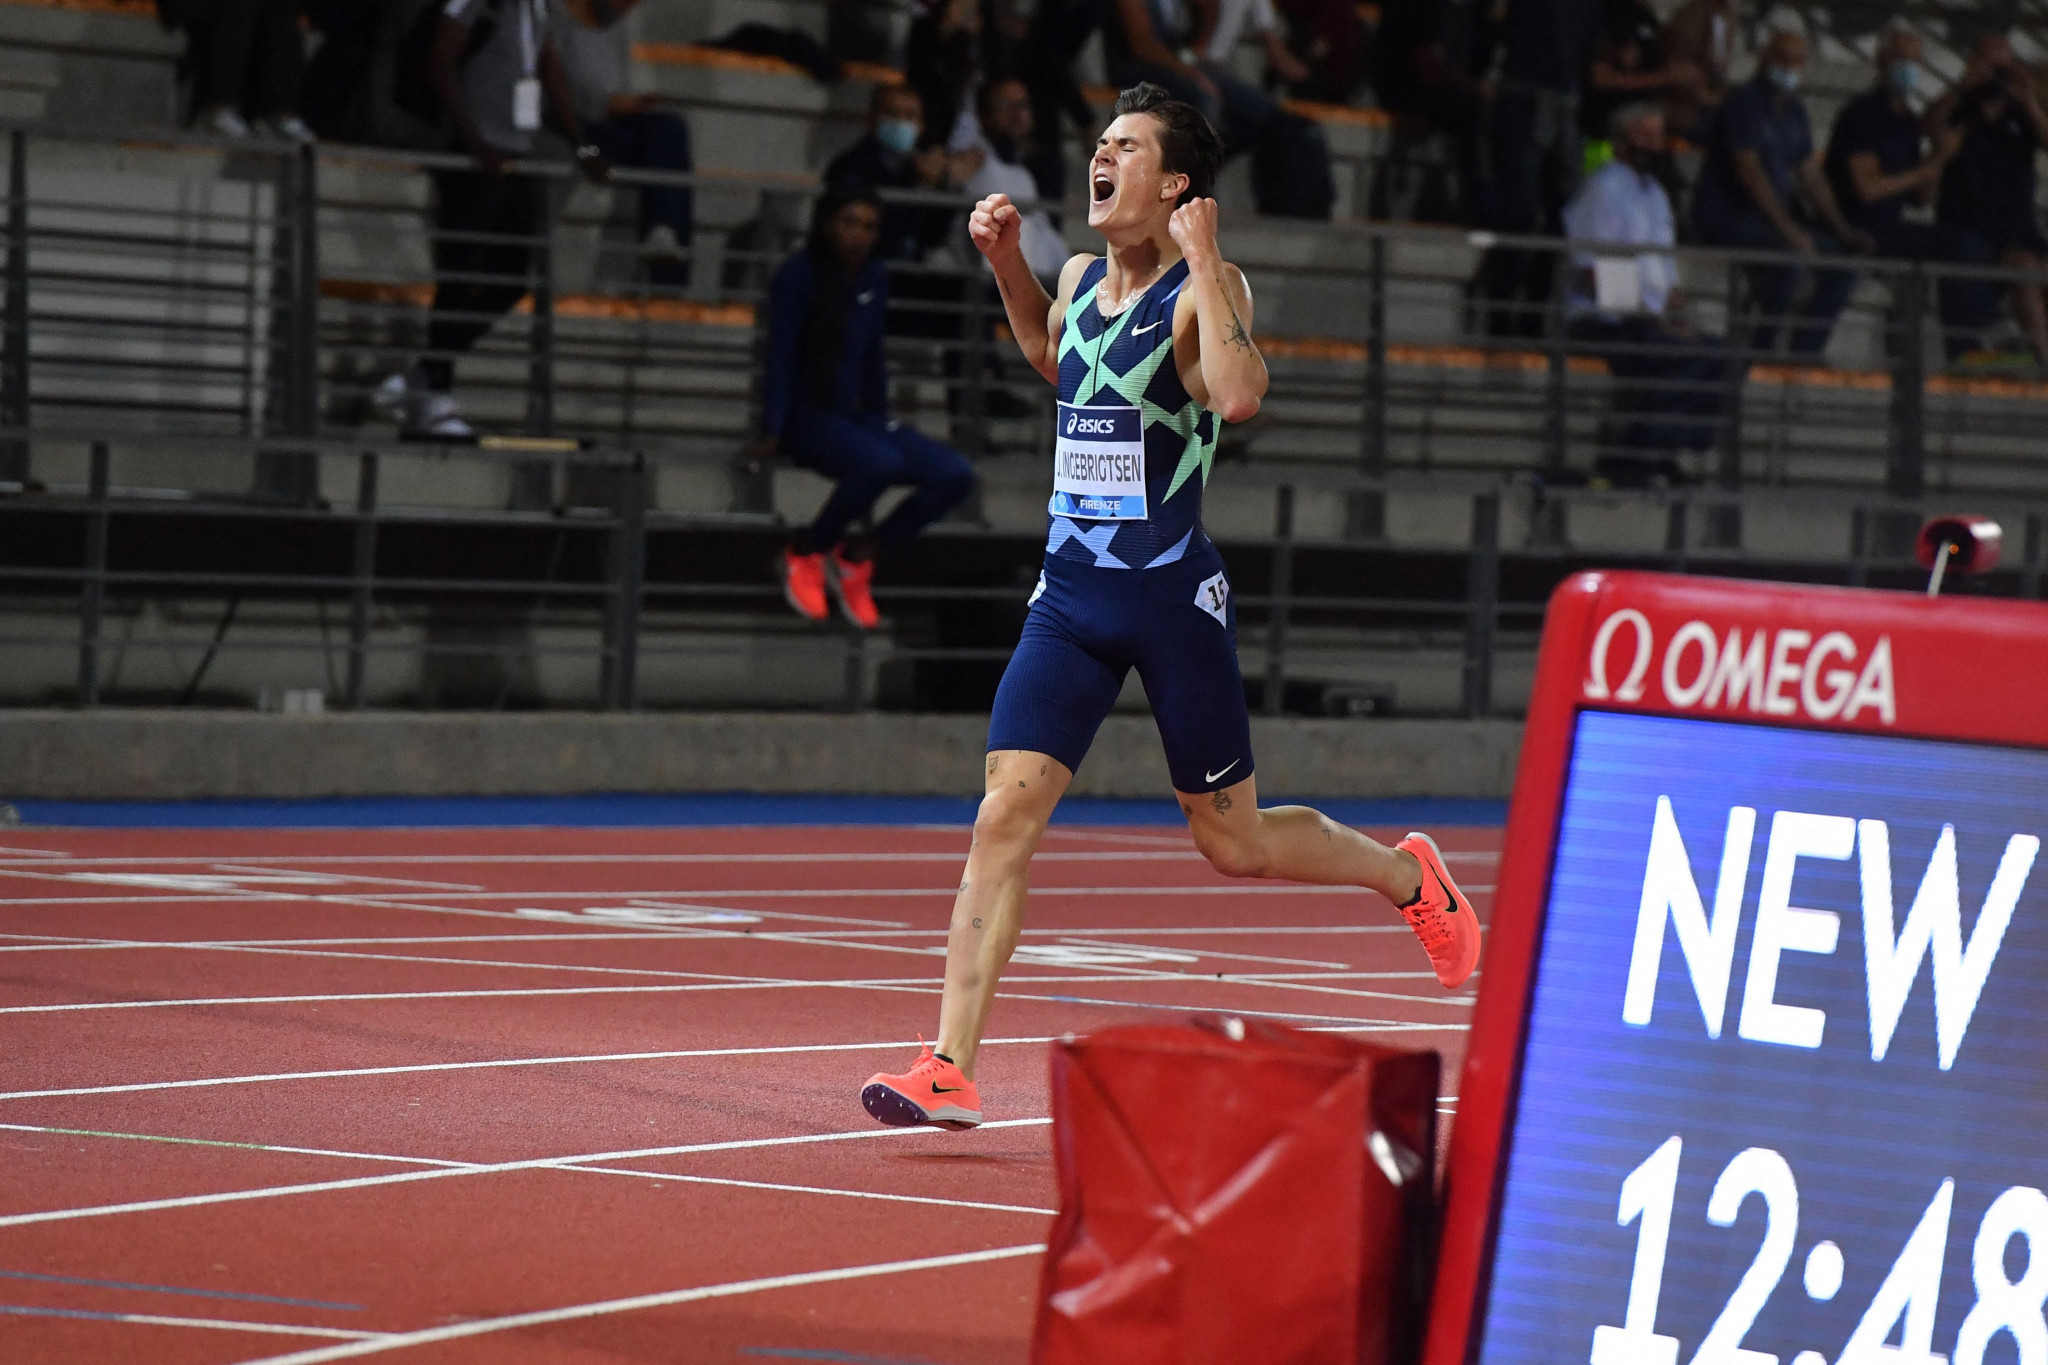 Ingebrigtsen sets European 5,000m record in defeating Cheptegei at Diamond League meeting in Florence